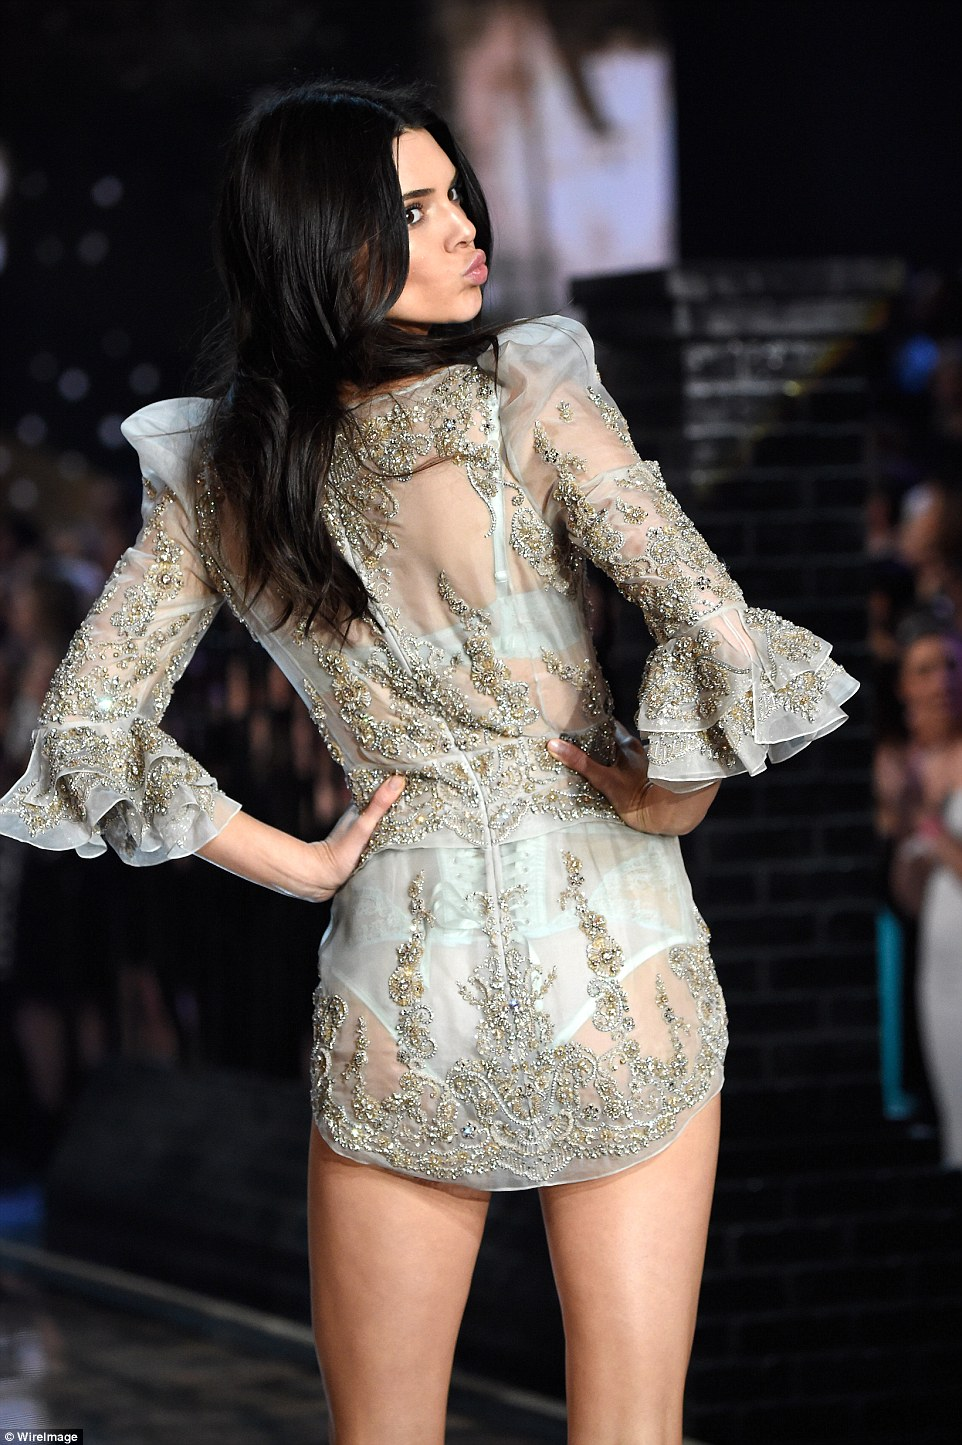 Kendall's pale blue lingerie number featured embellished details